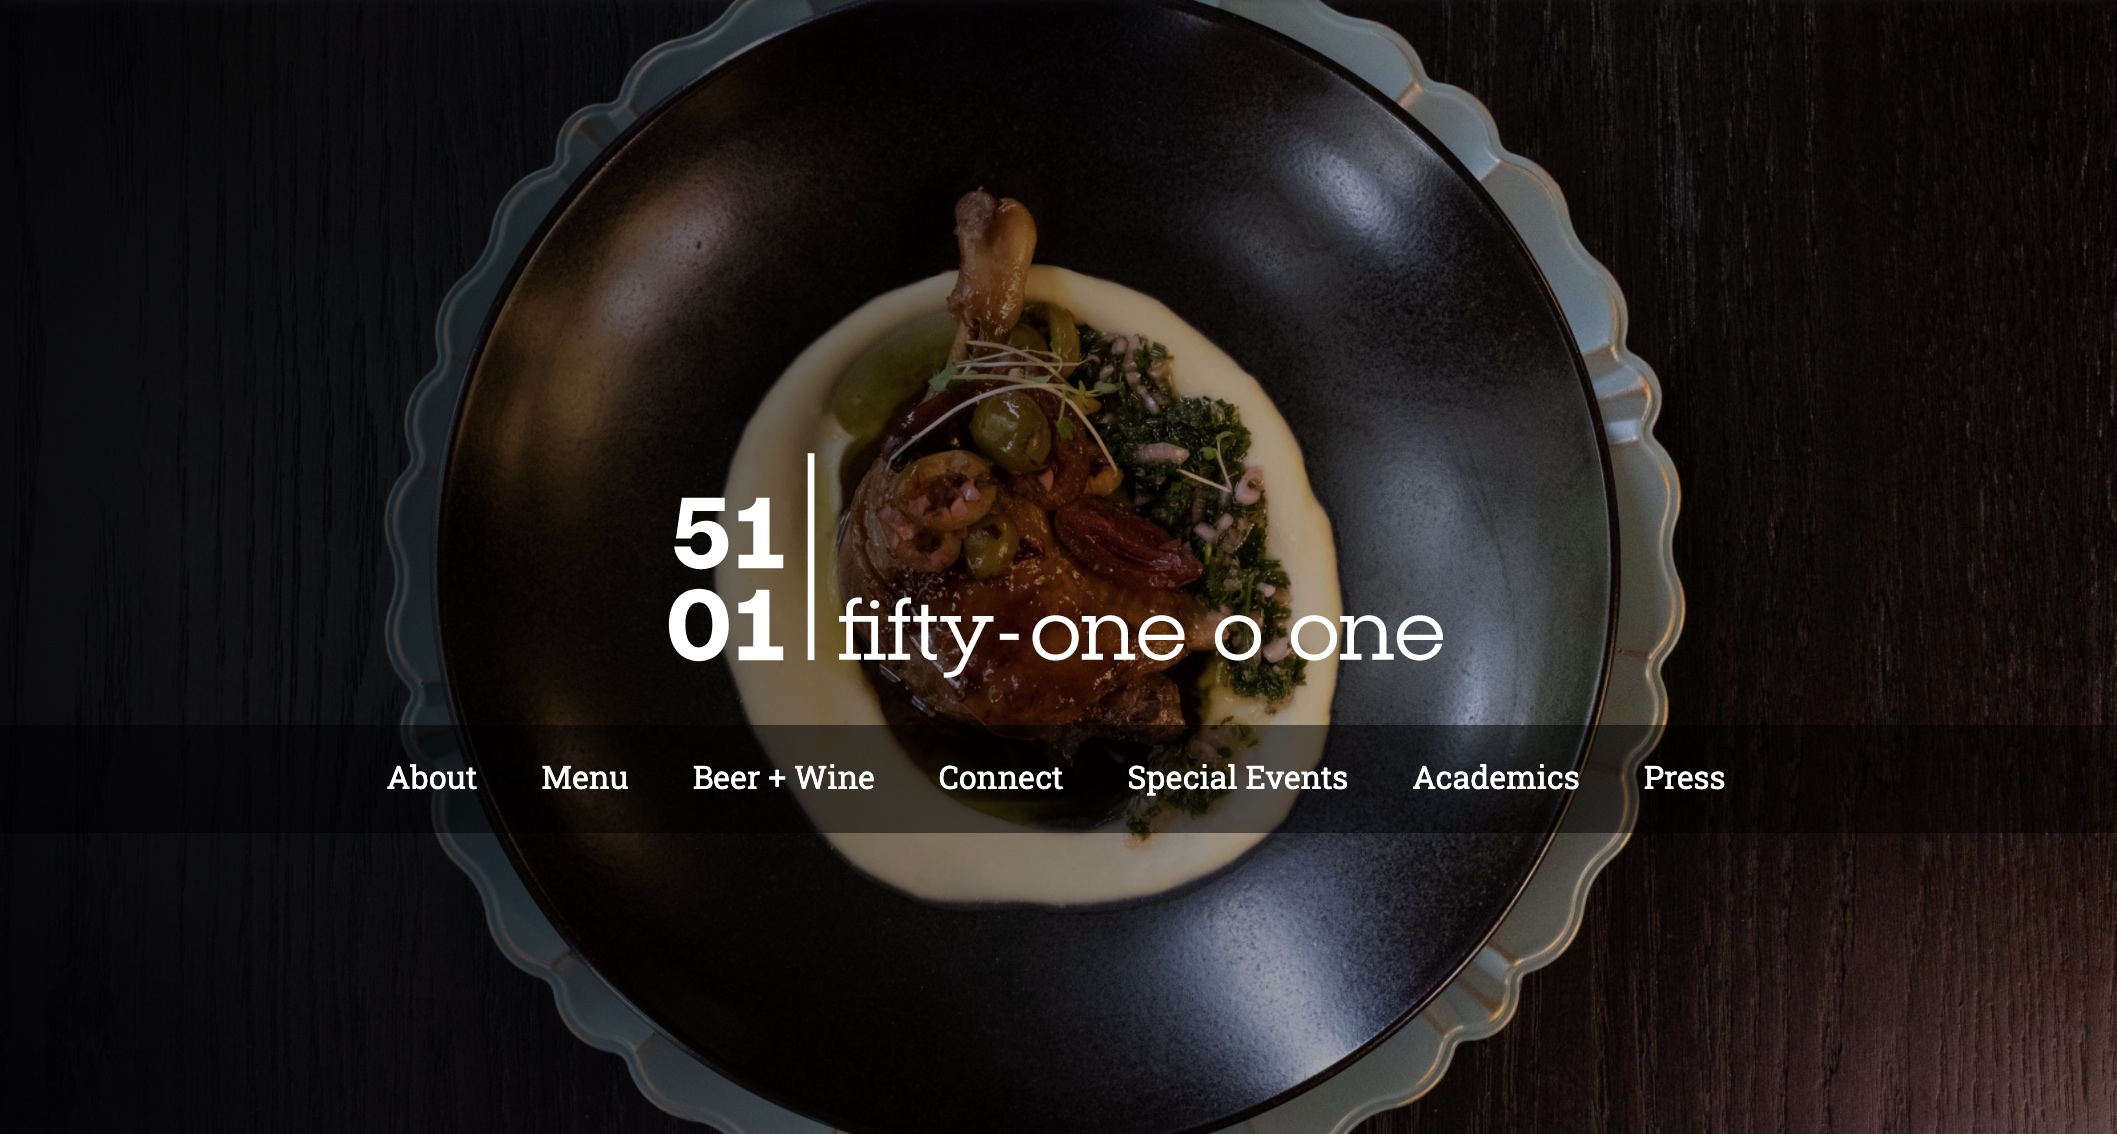 Image of Fifty-One O One's website menu